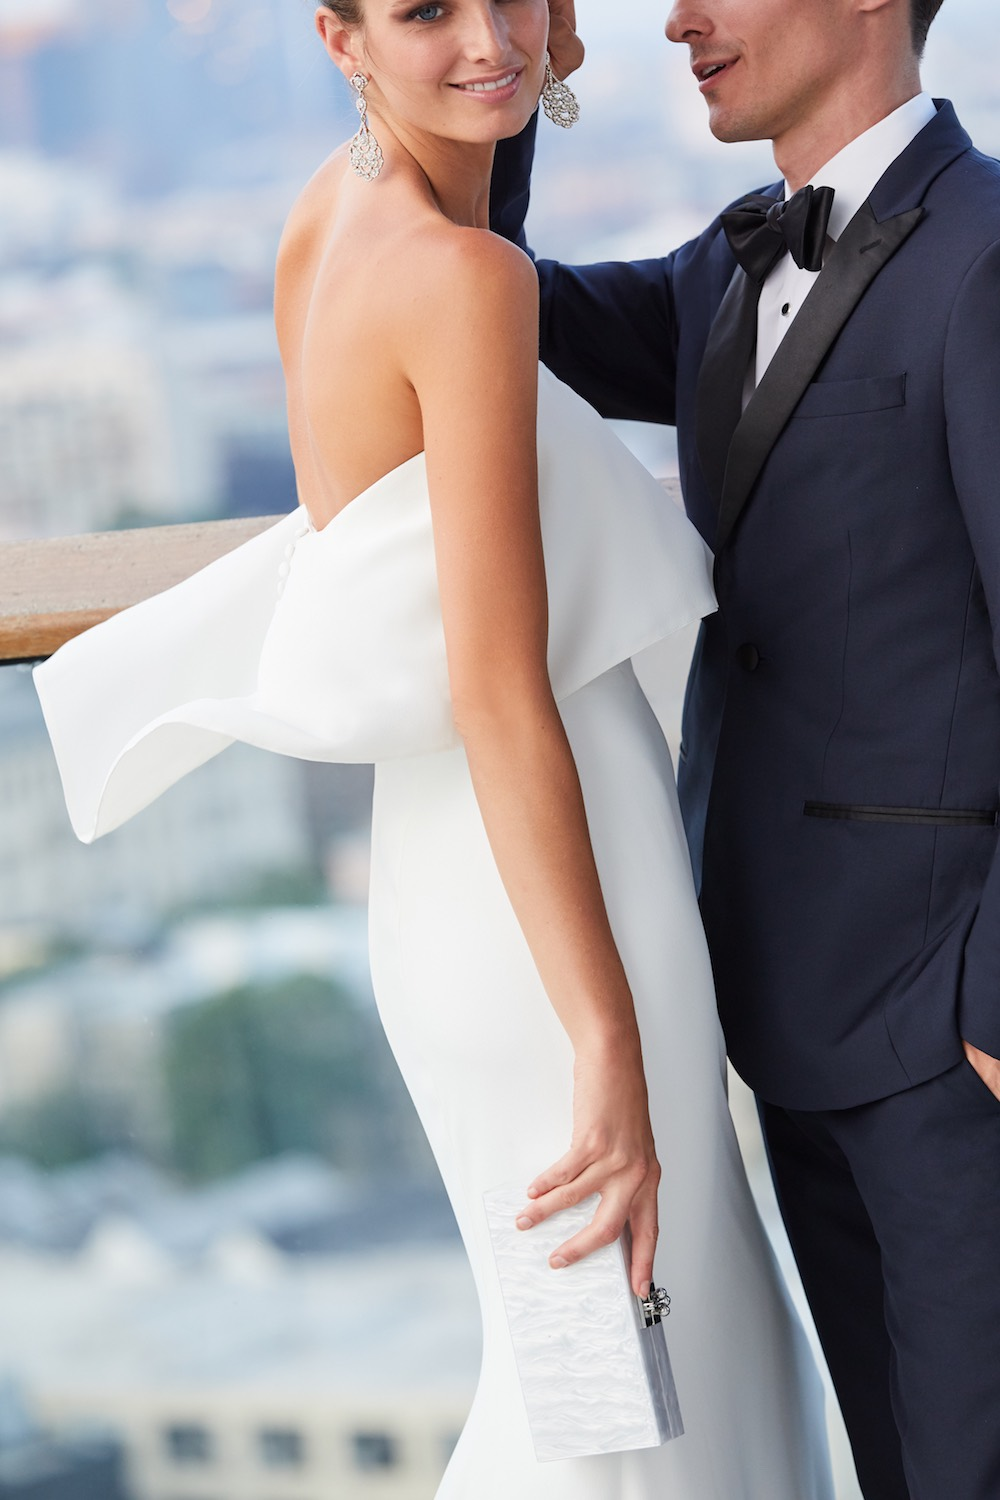 Classic City Wedding Looks: BHLDN Wedding Dresses and The Black Tux